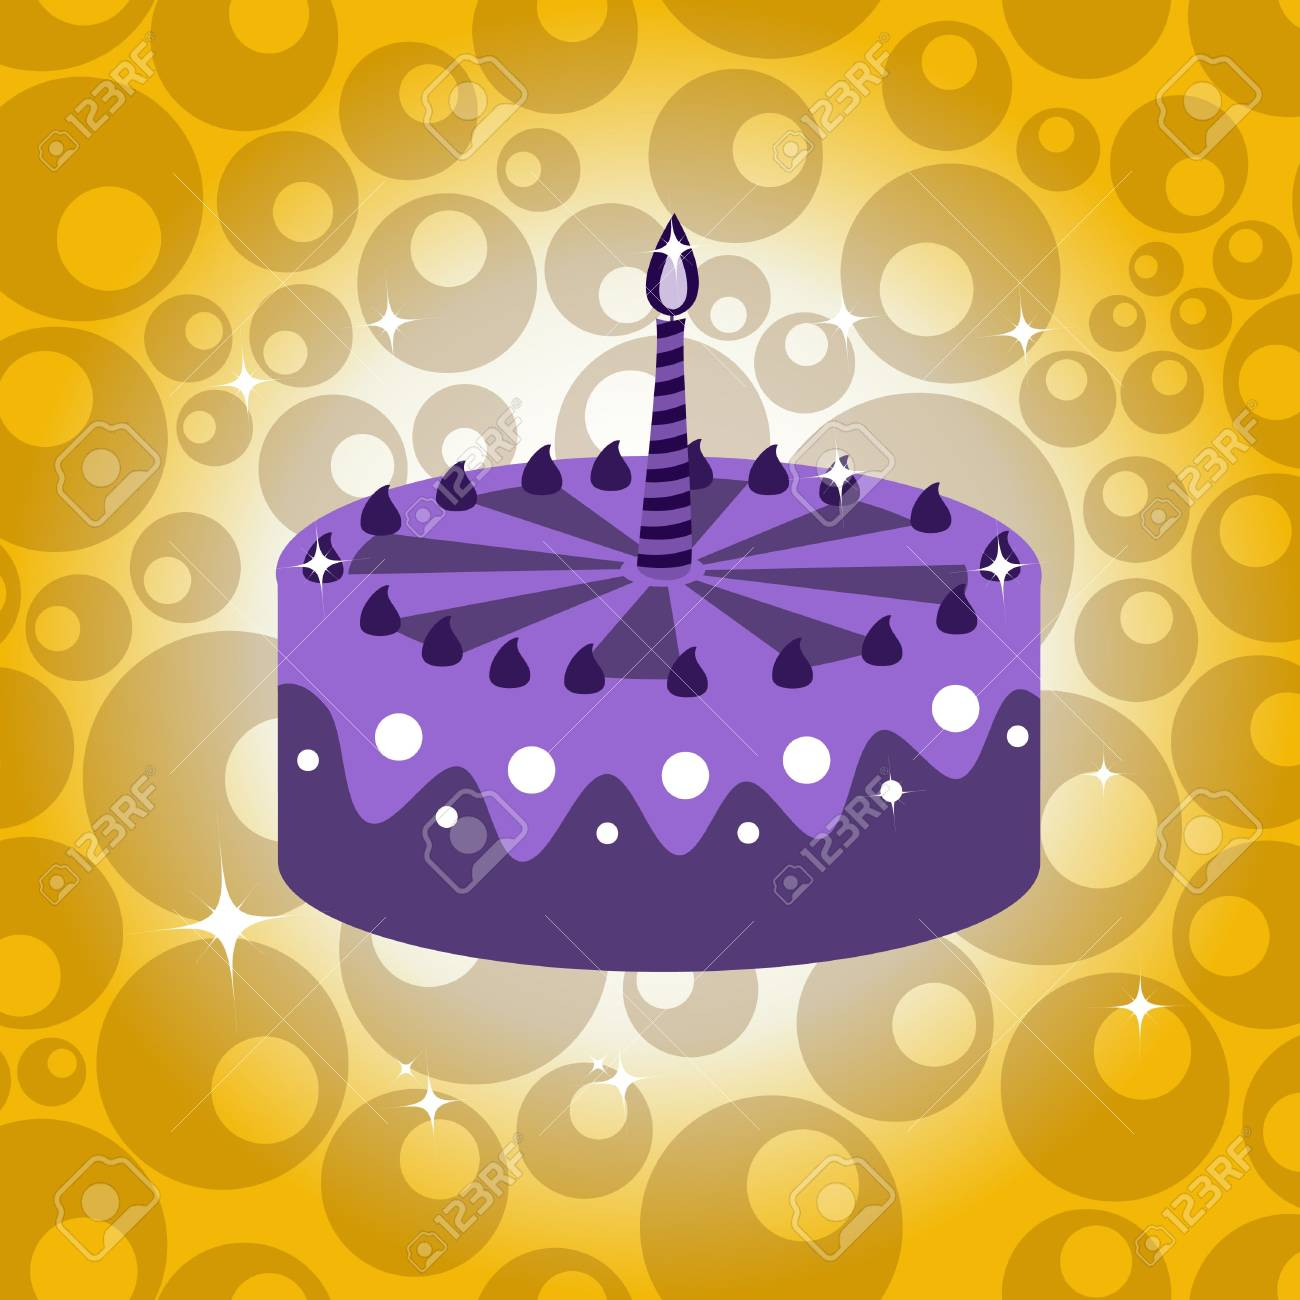 illustration of birthday cake with the candle. Stock Illustration - 6605453